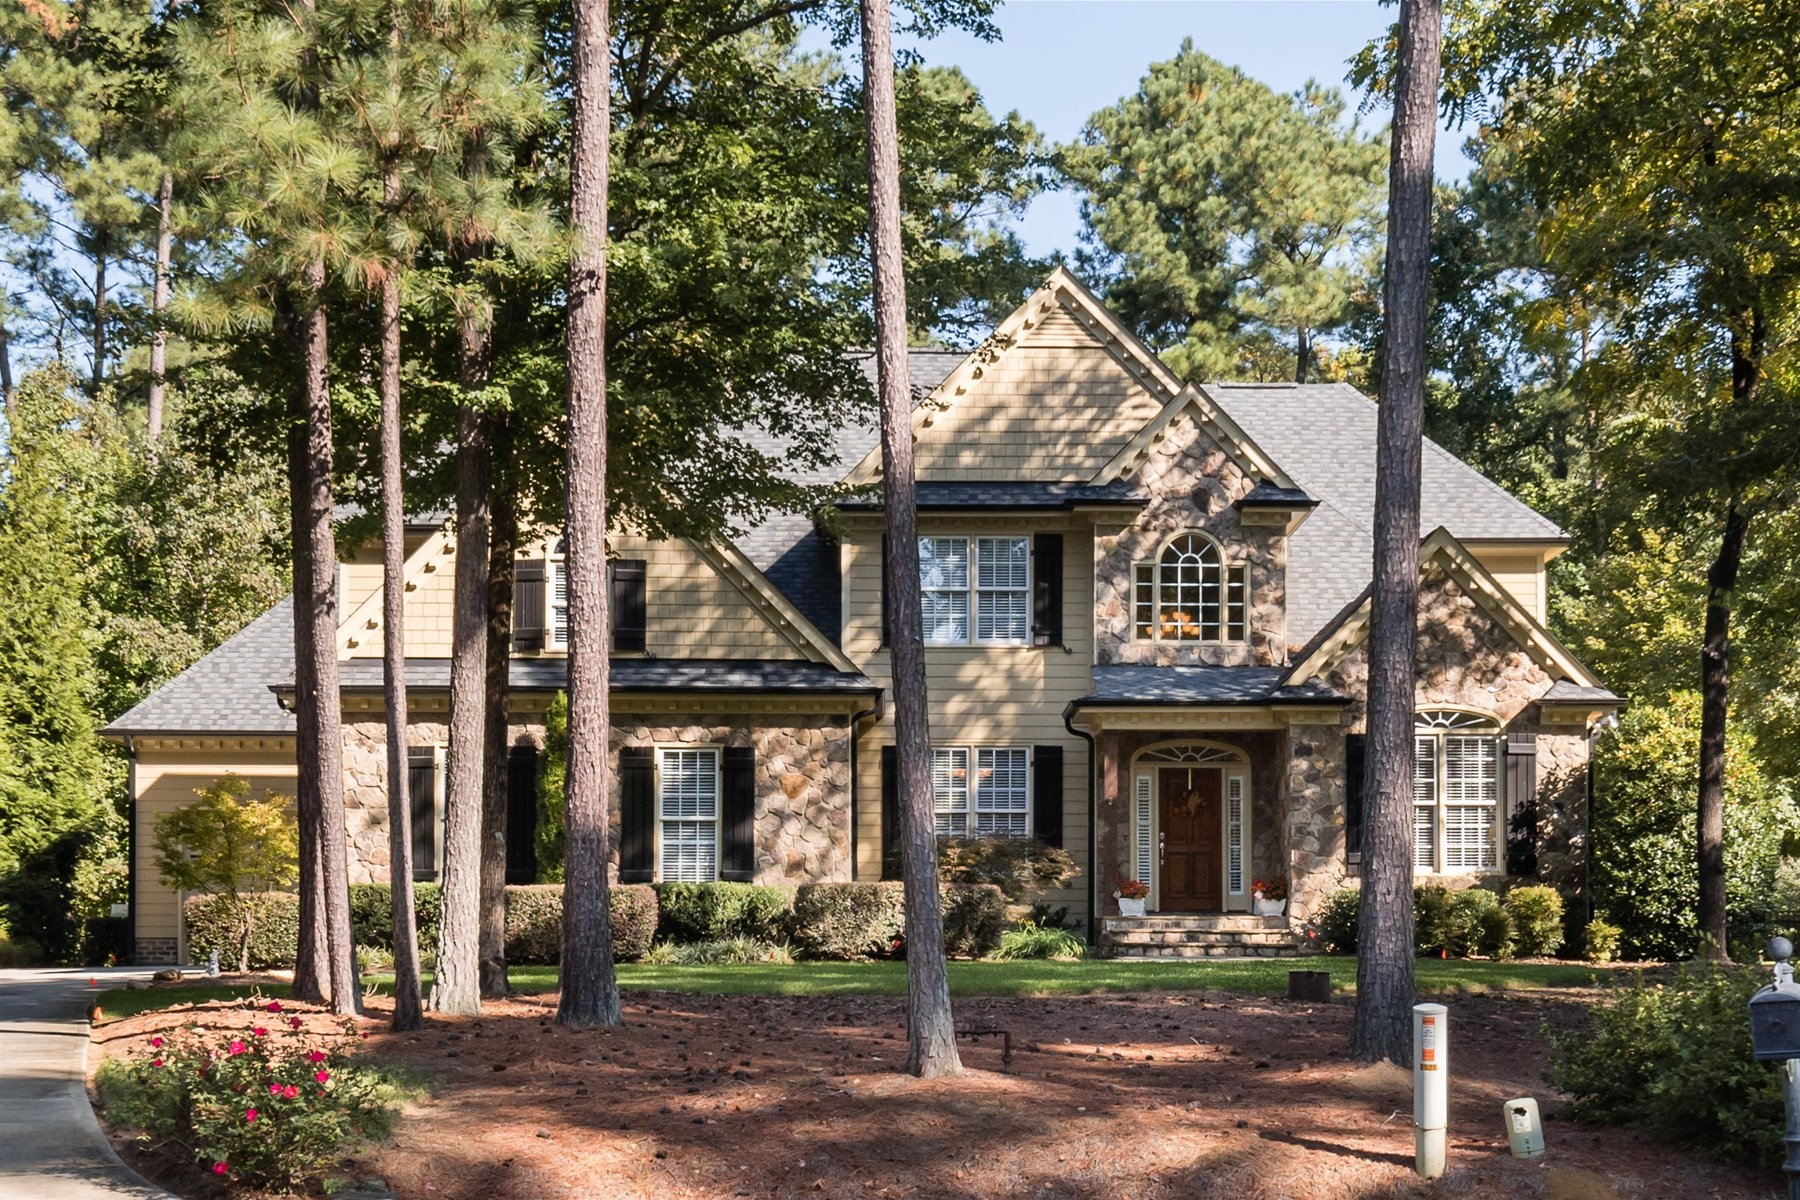 Single Family Home for Sale at Fantastic Residence Move-in Ready 7517 Mossy Glen Court Raleigh, North Carolina, 27614 United StatesIn/Around: Cary, Chapel Hill, Durham, Wake Forest